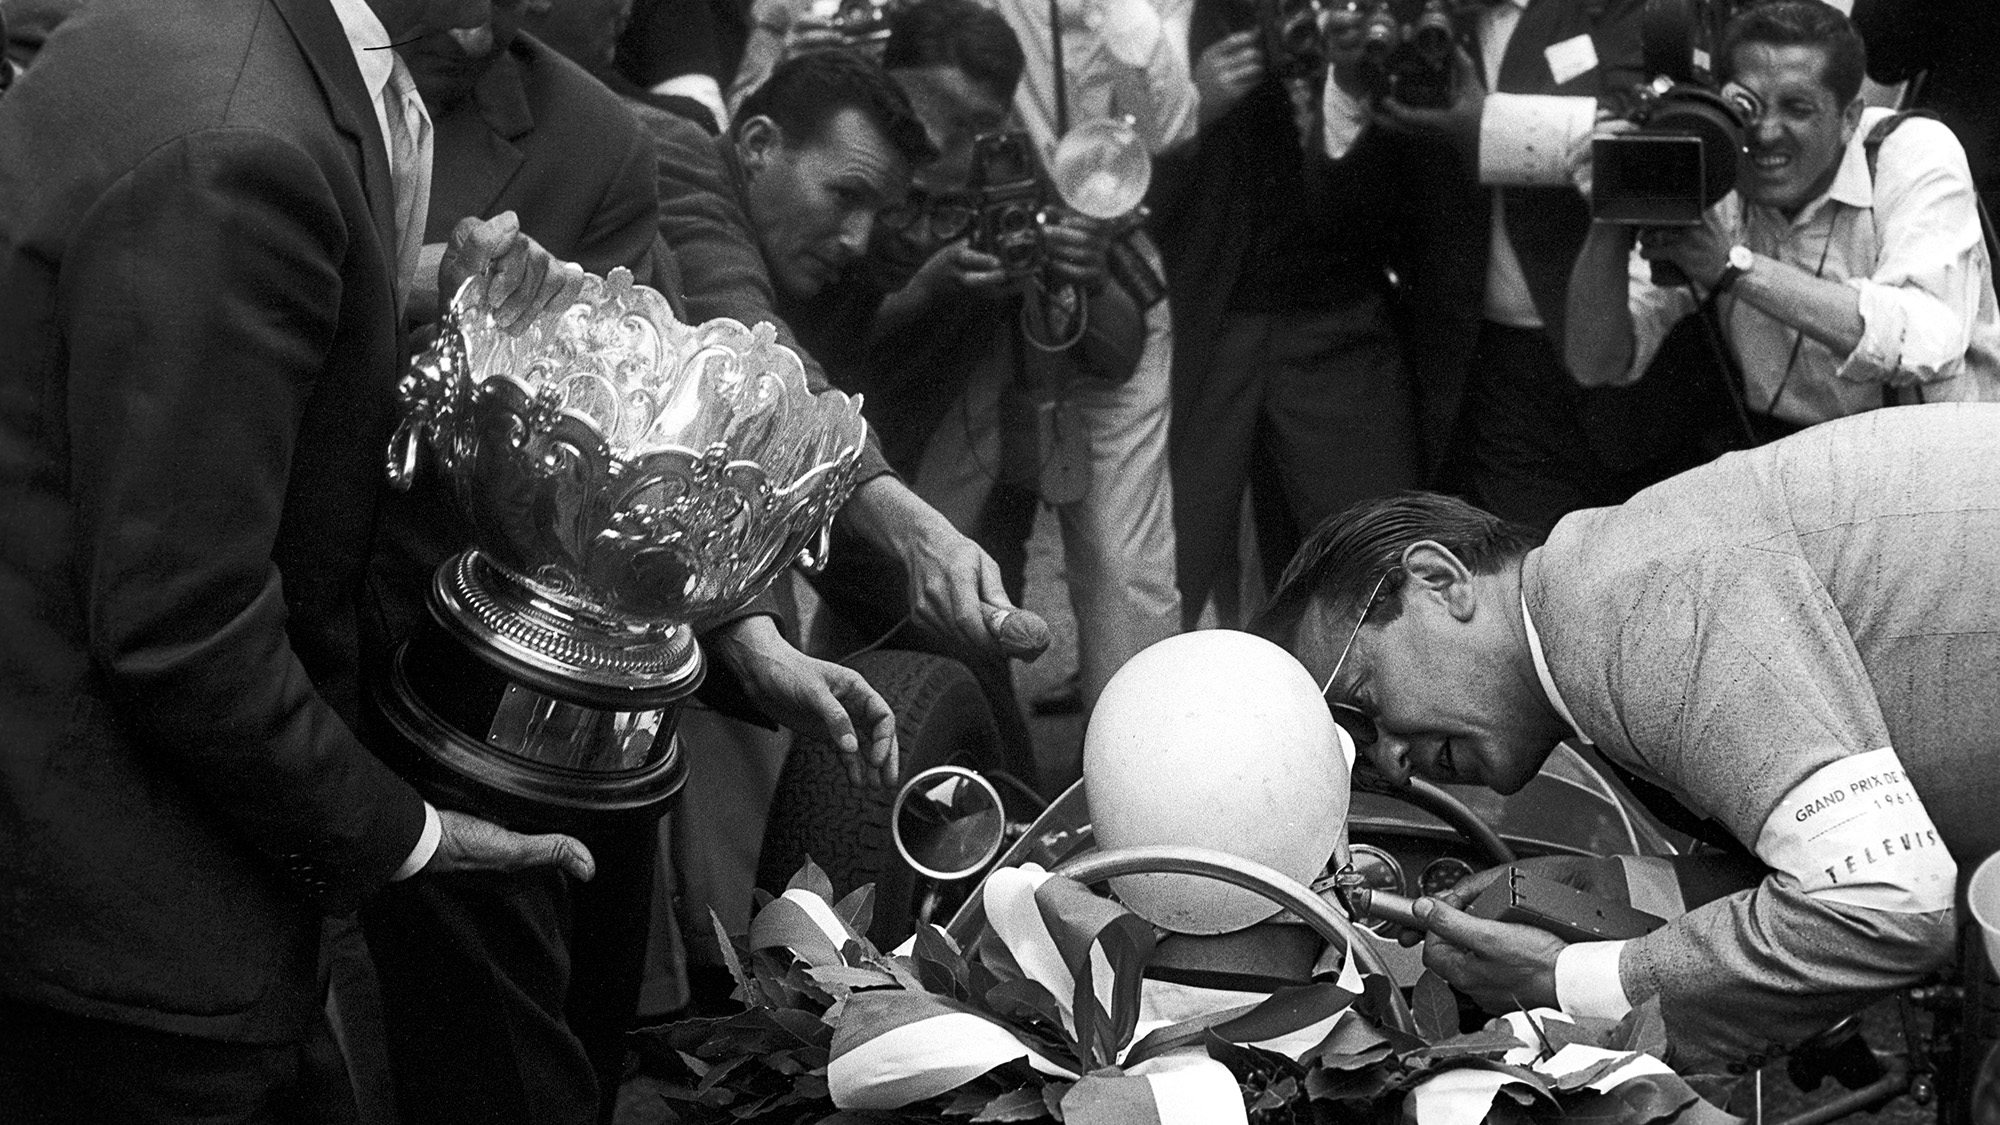 Stirling Moss in his car after winning the 1961 Monaco Grand Prix